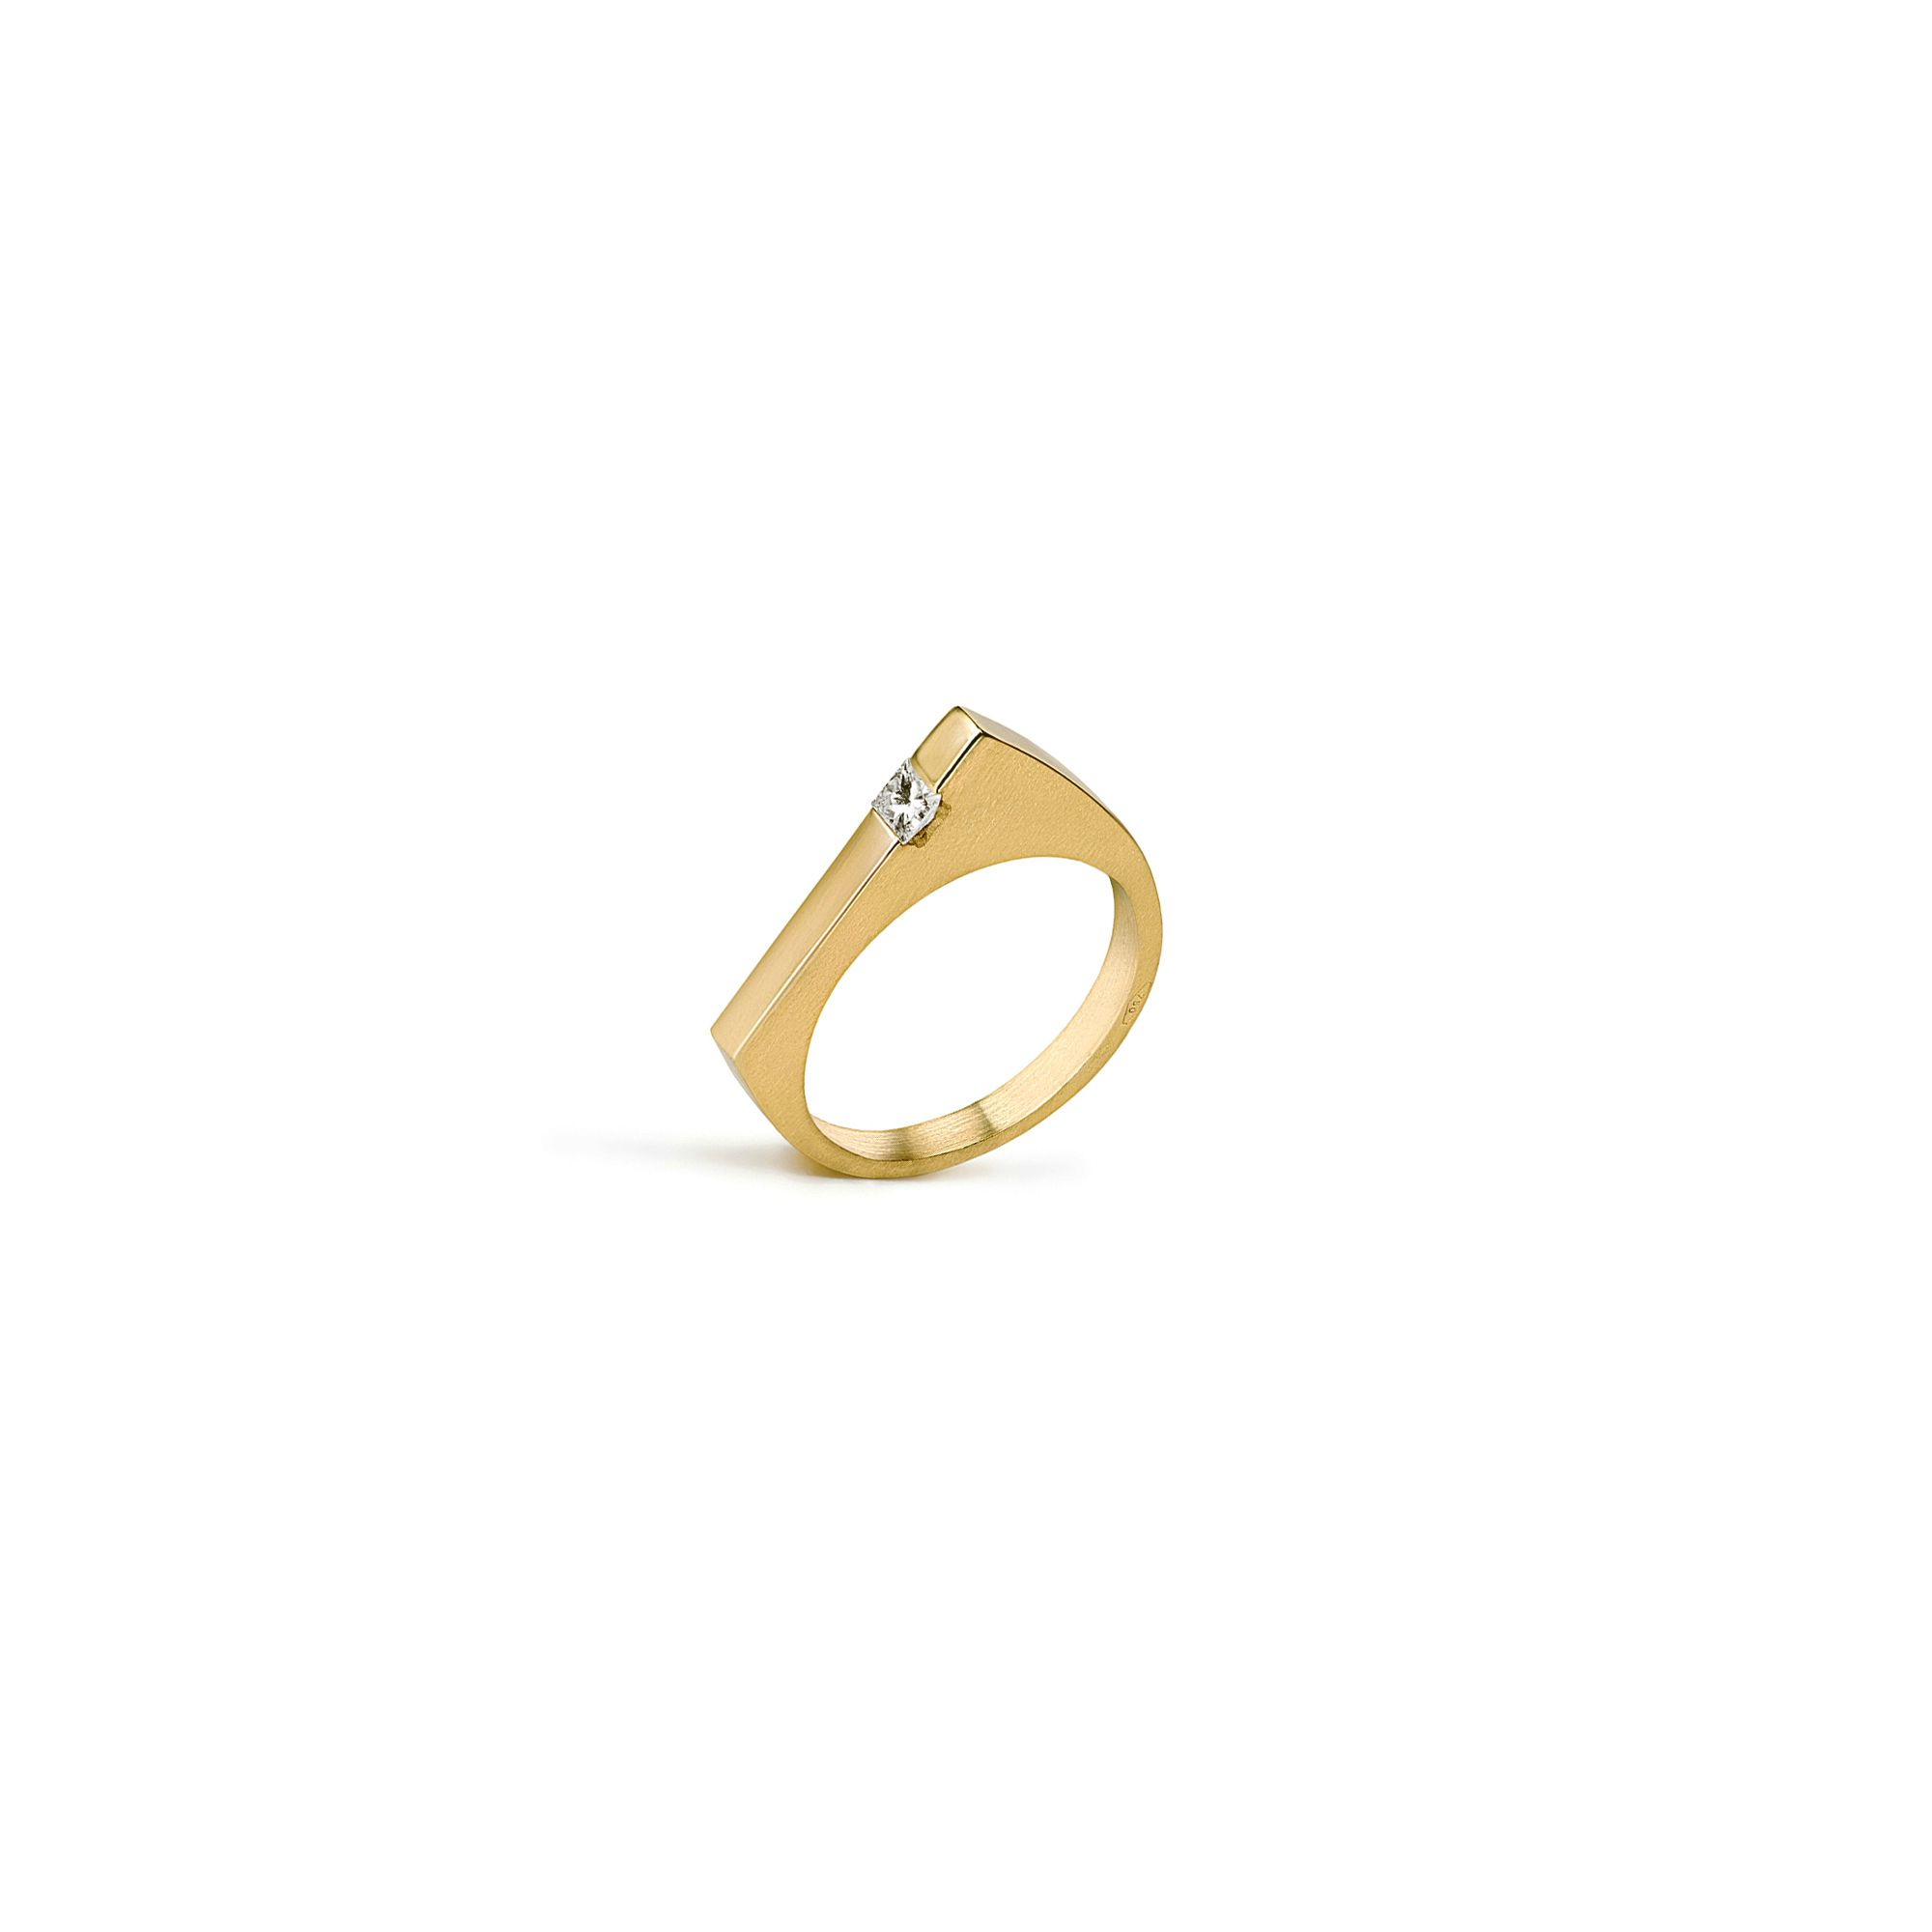 Modular 'Congiunzioni' point ring with Princess Yellow gold ring with diamonds